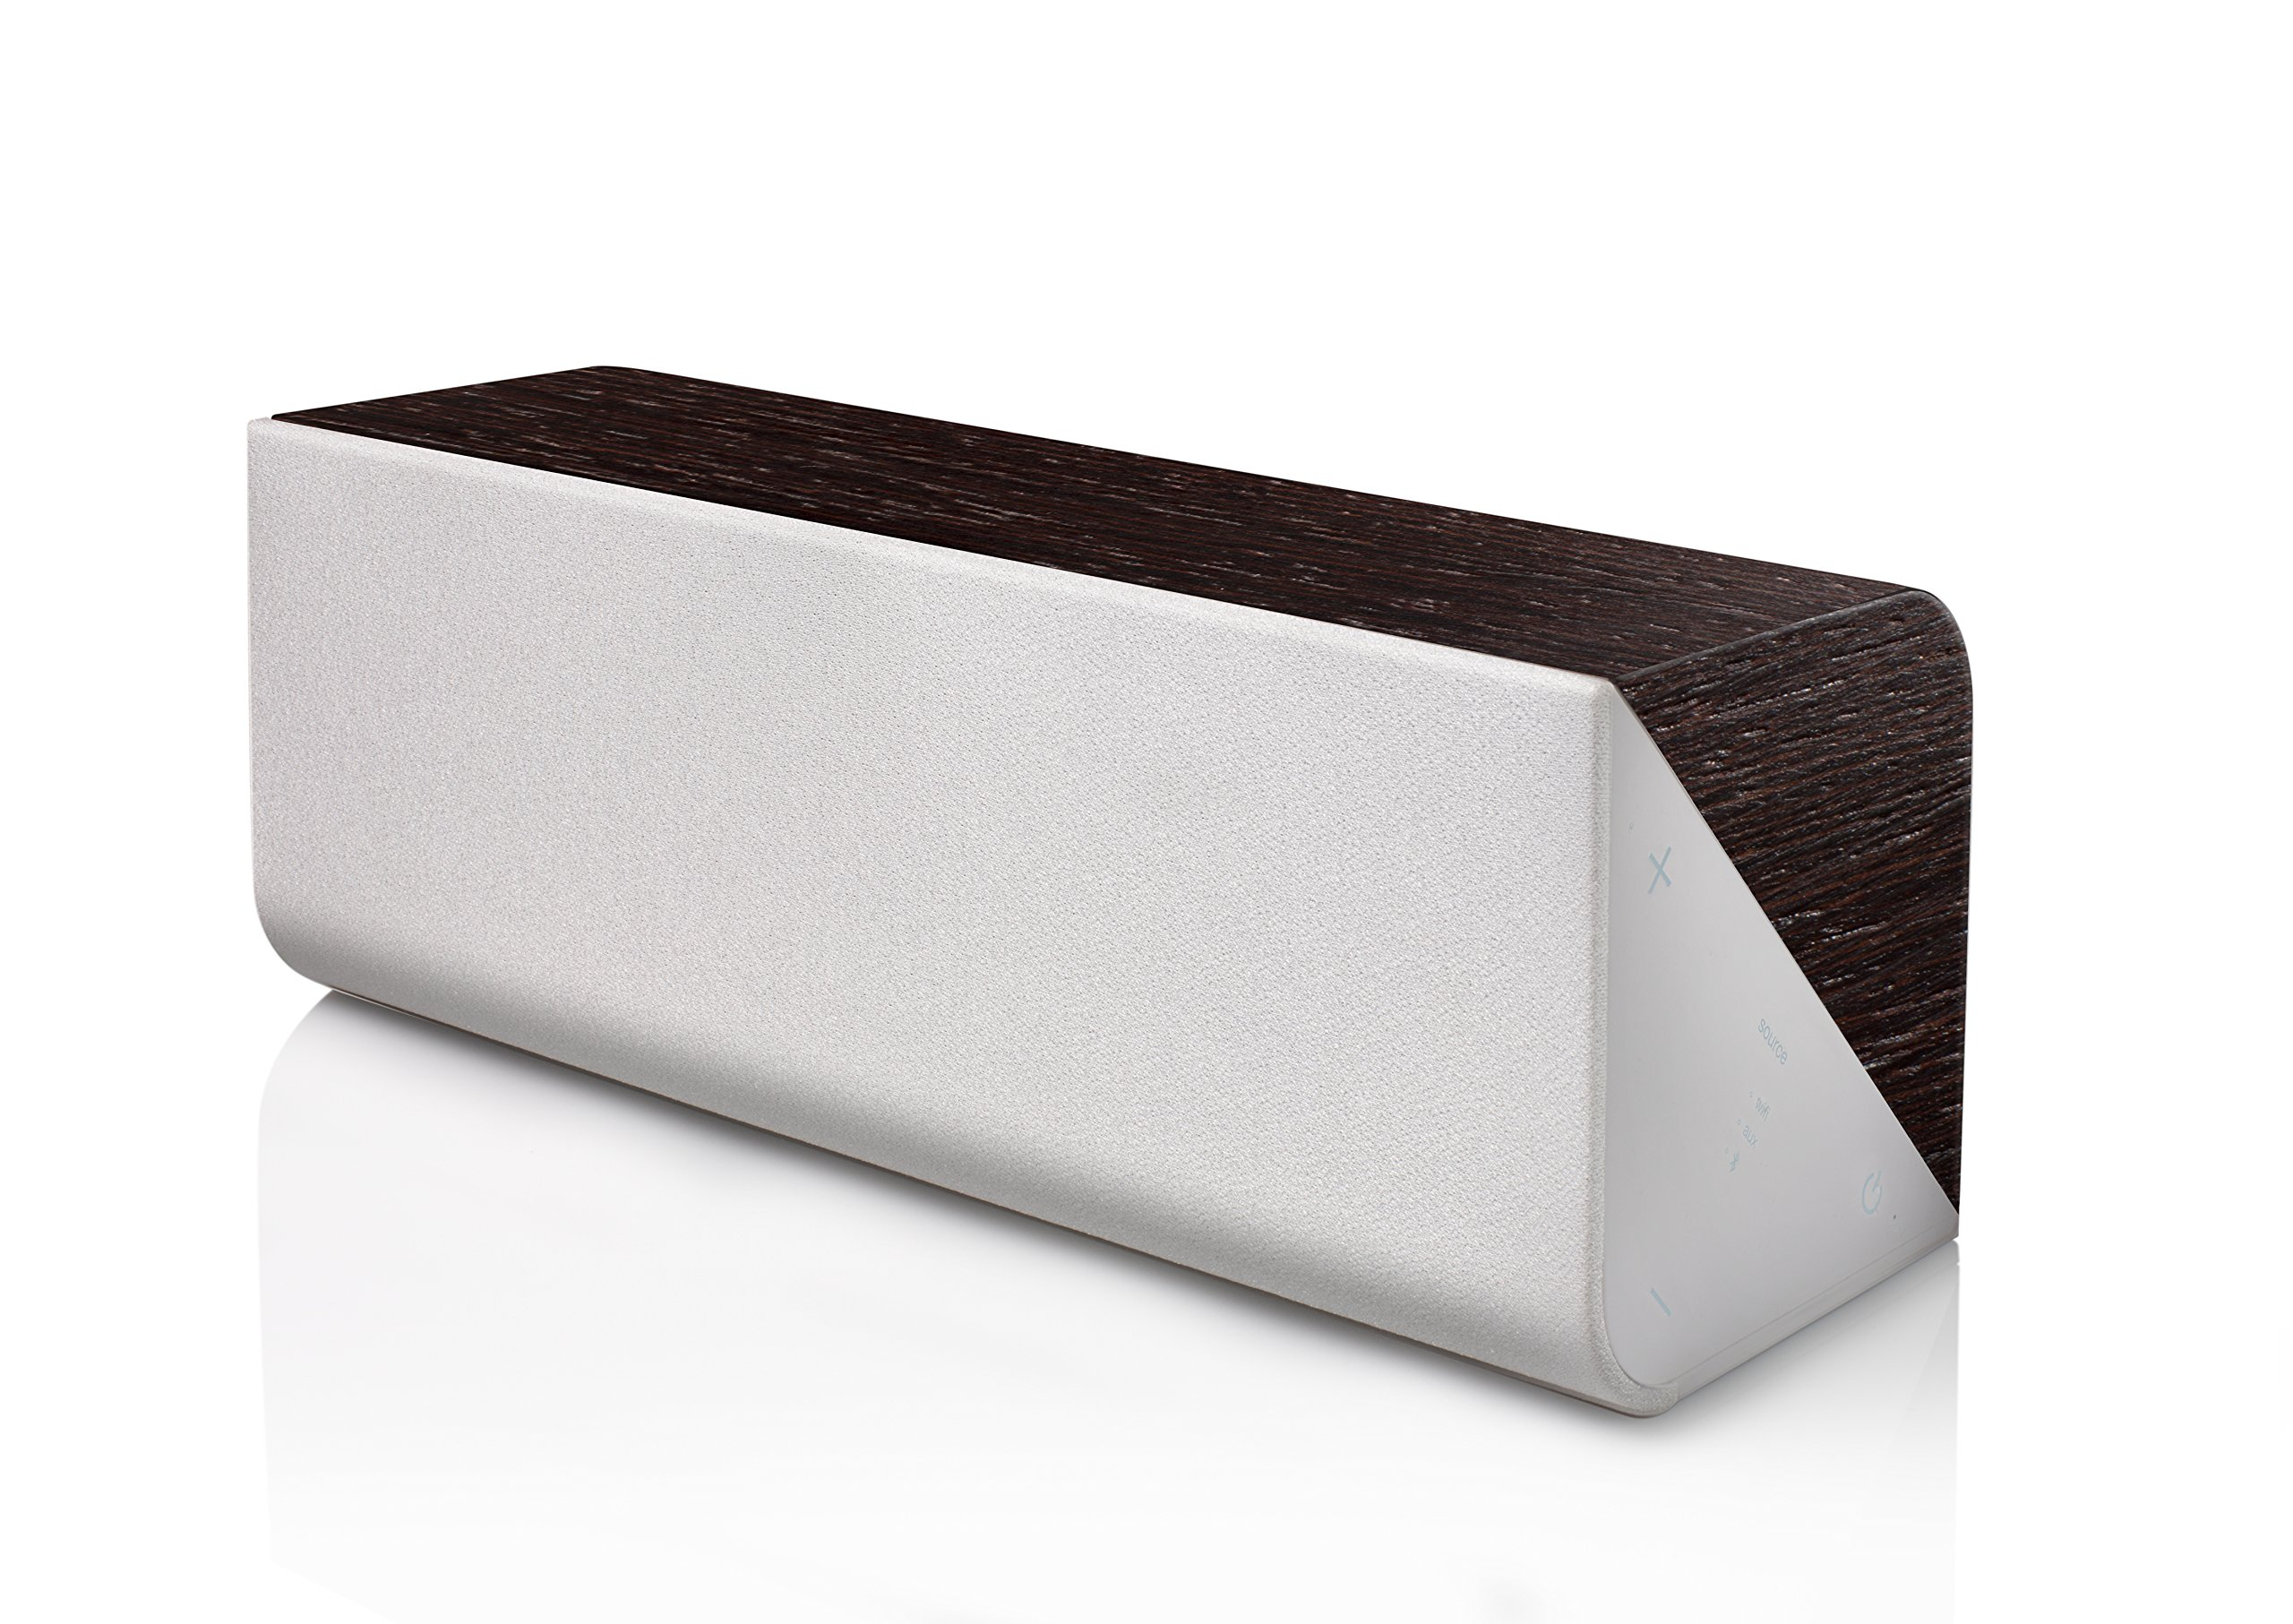 Wren Sound V3USP Portable Wireless speaker with AirPlay, Bluetooth and DTS Play-FI - (Wenge with Espresso Finish)